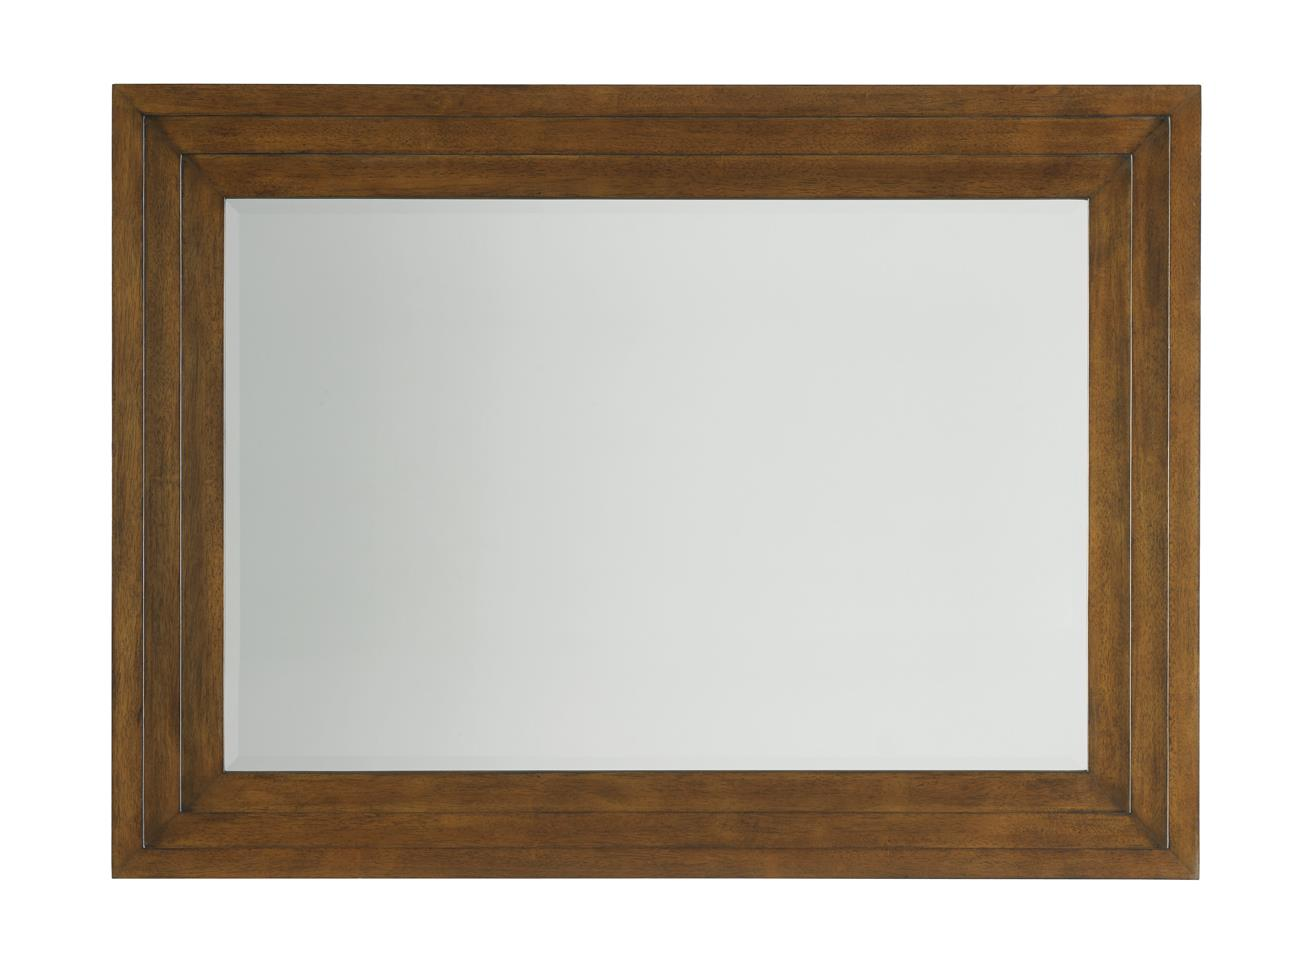 Tommy Bahama Home Island Fusion Luzon Landscape Mirror - Item Number: 556-205